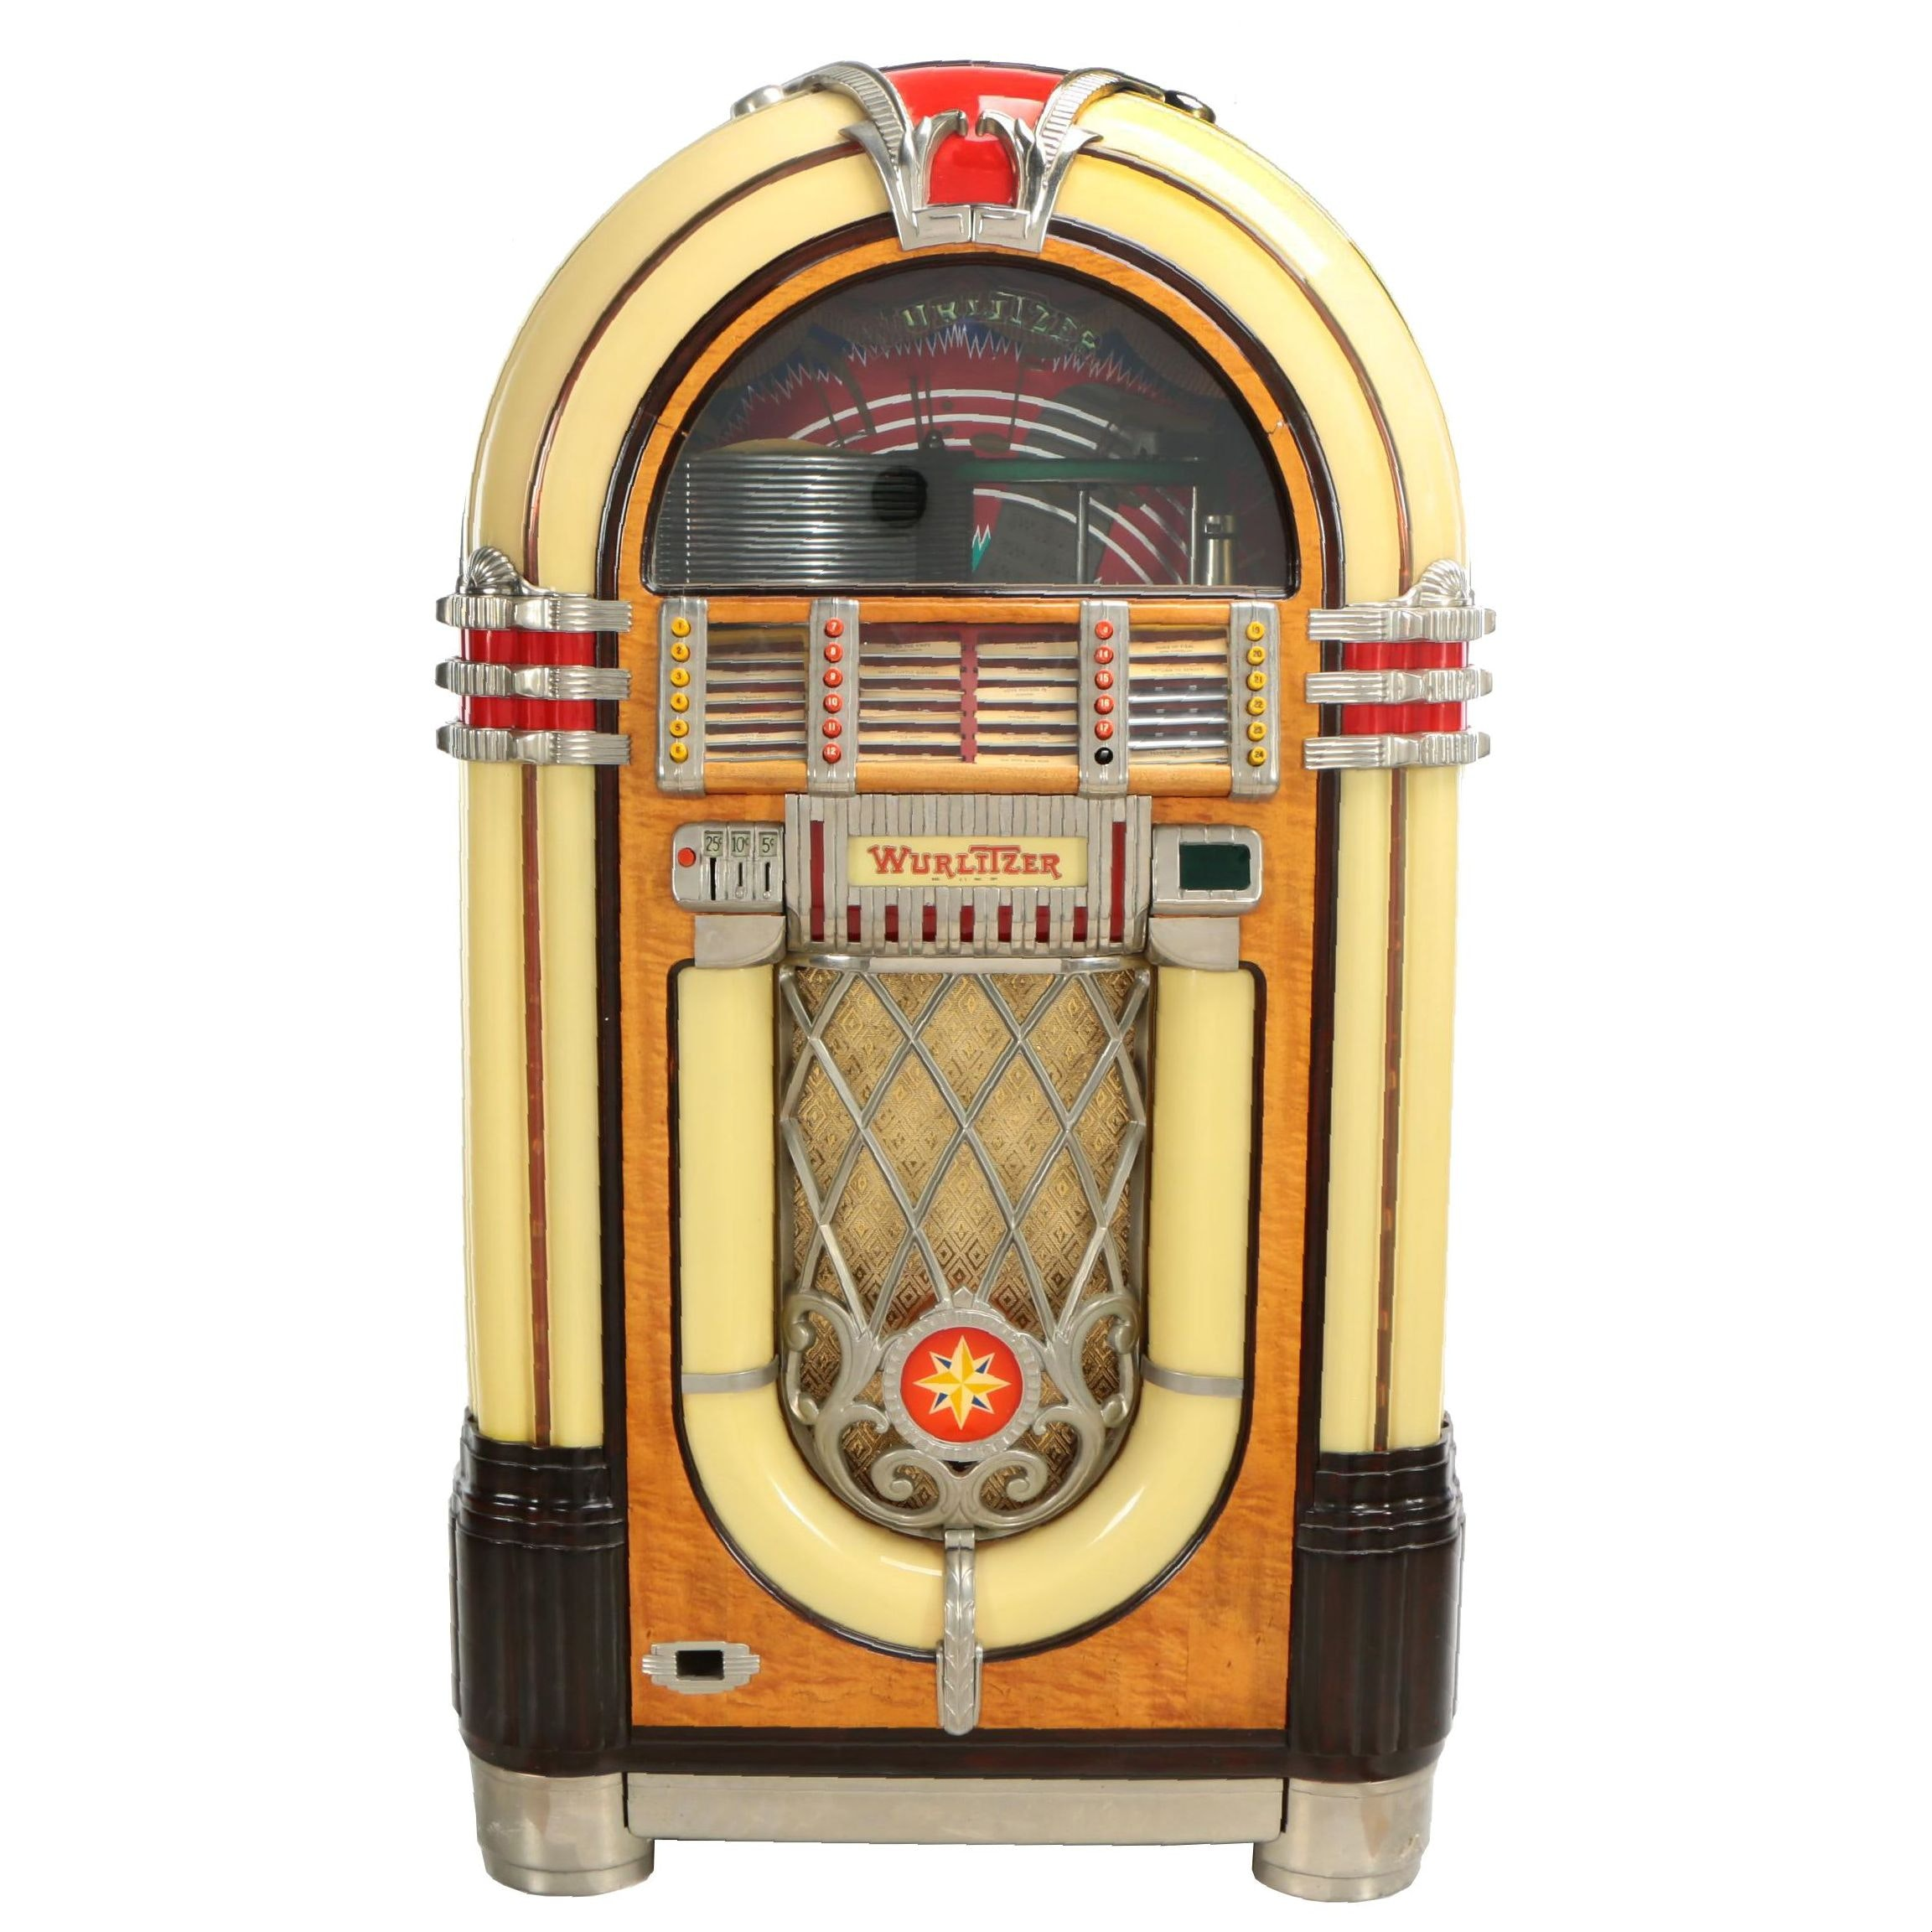 Wurlitzer 1015 Walnut and Acrylic Jukebox, 1946